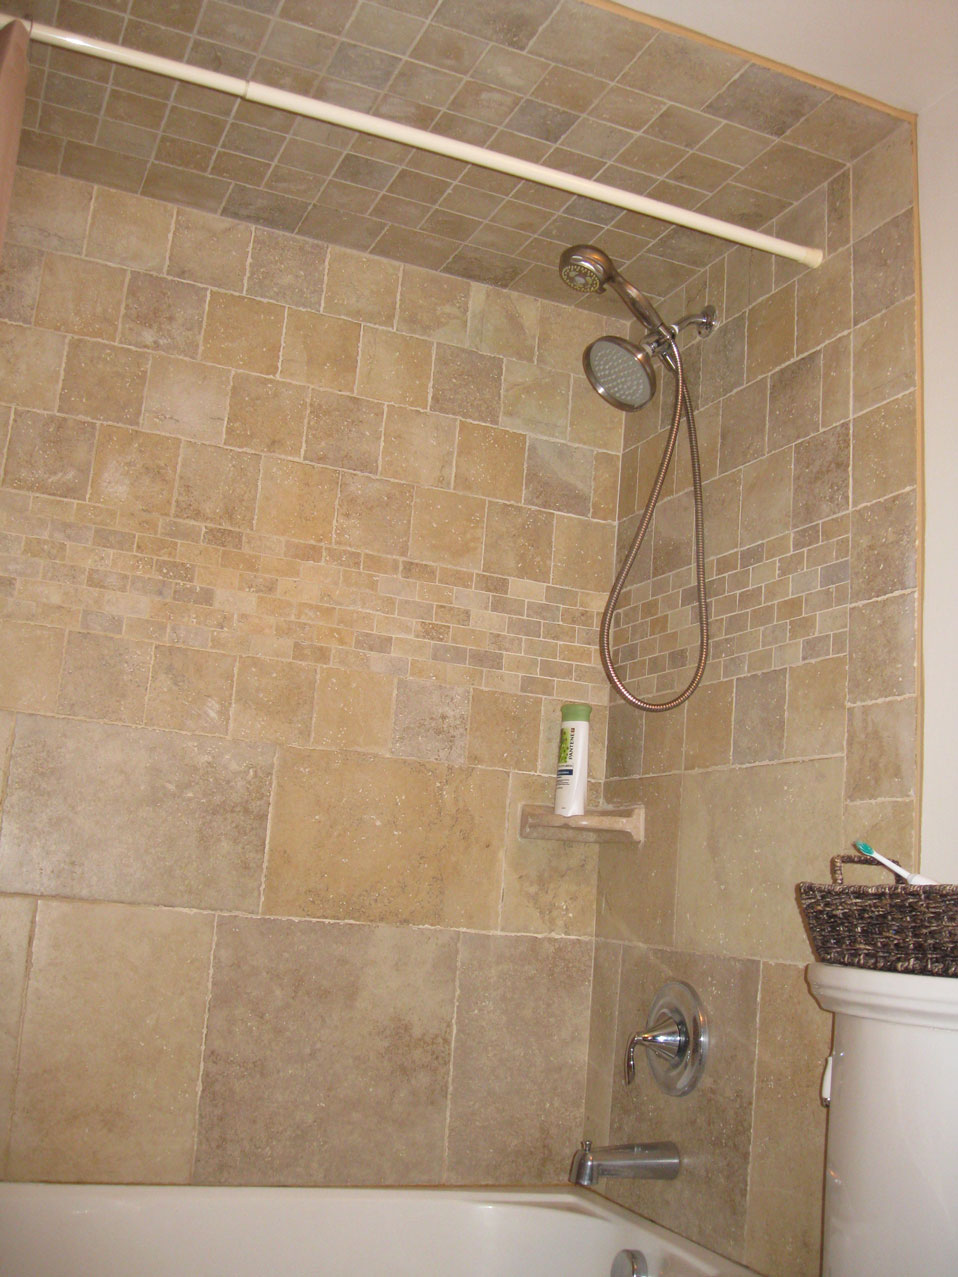 Stephen jatho tile setting Tile shower stalls